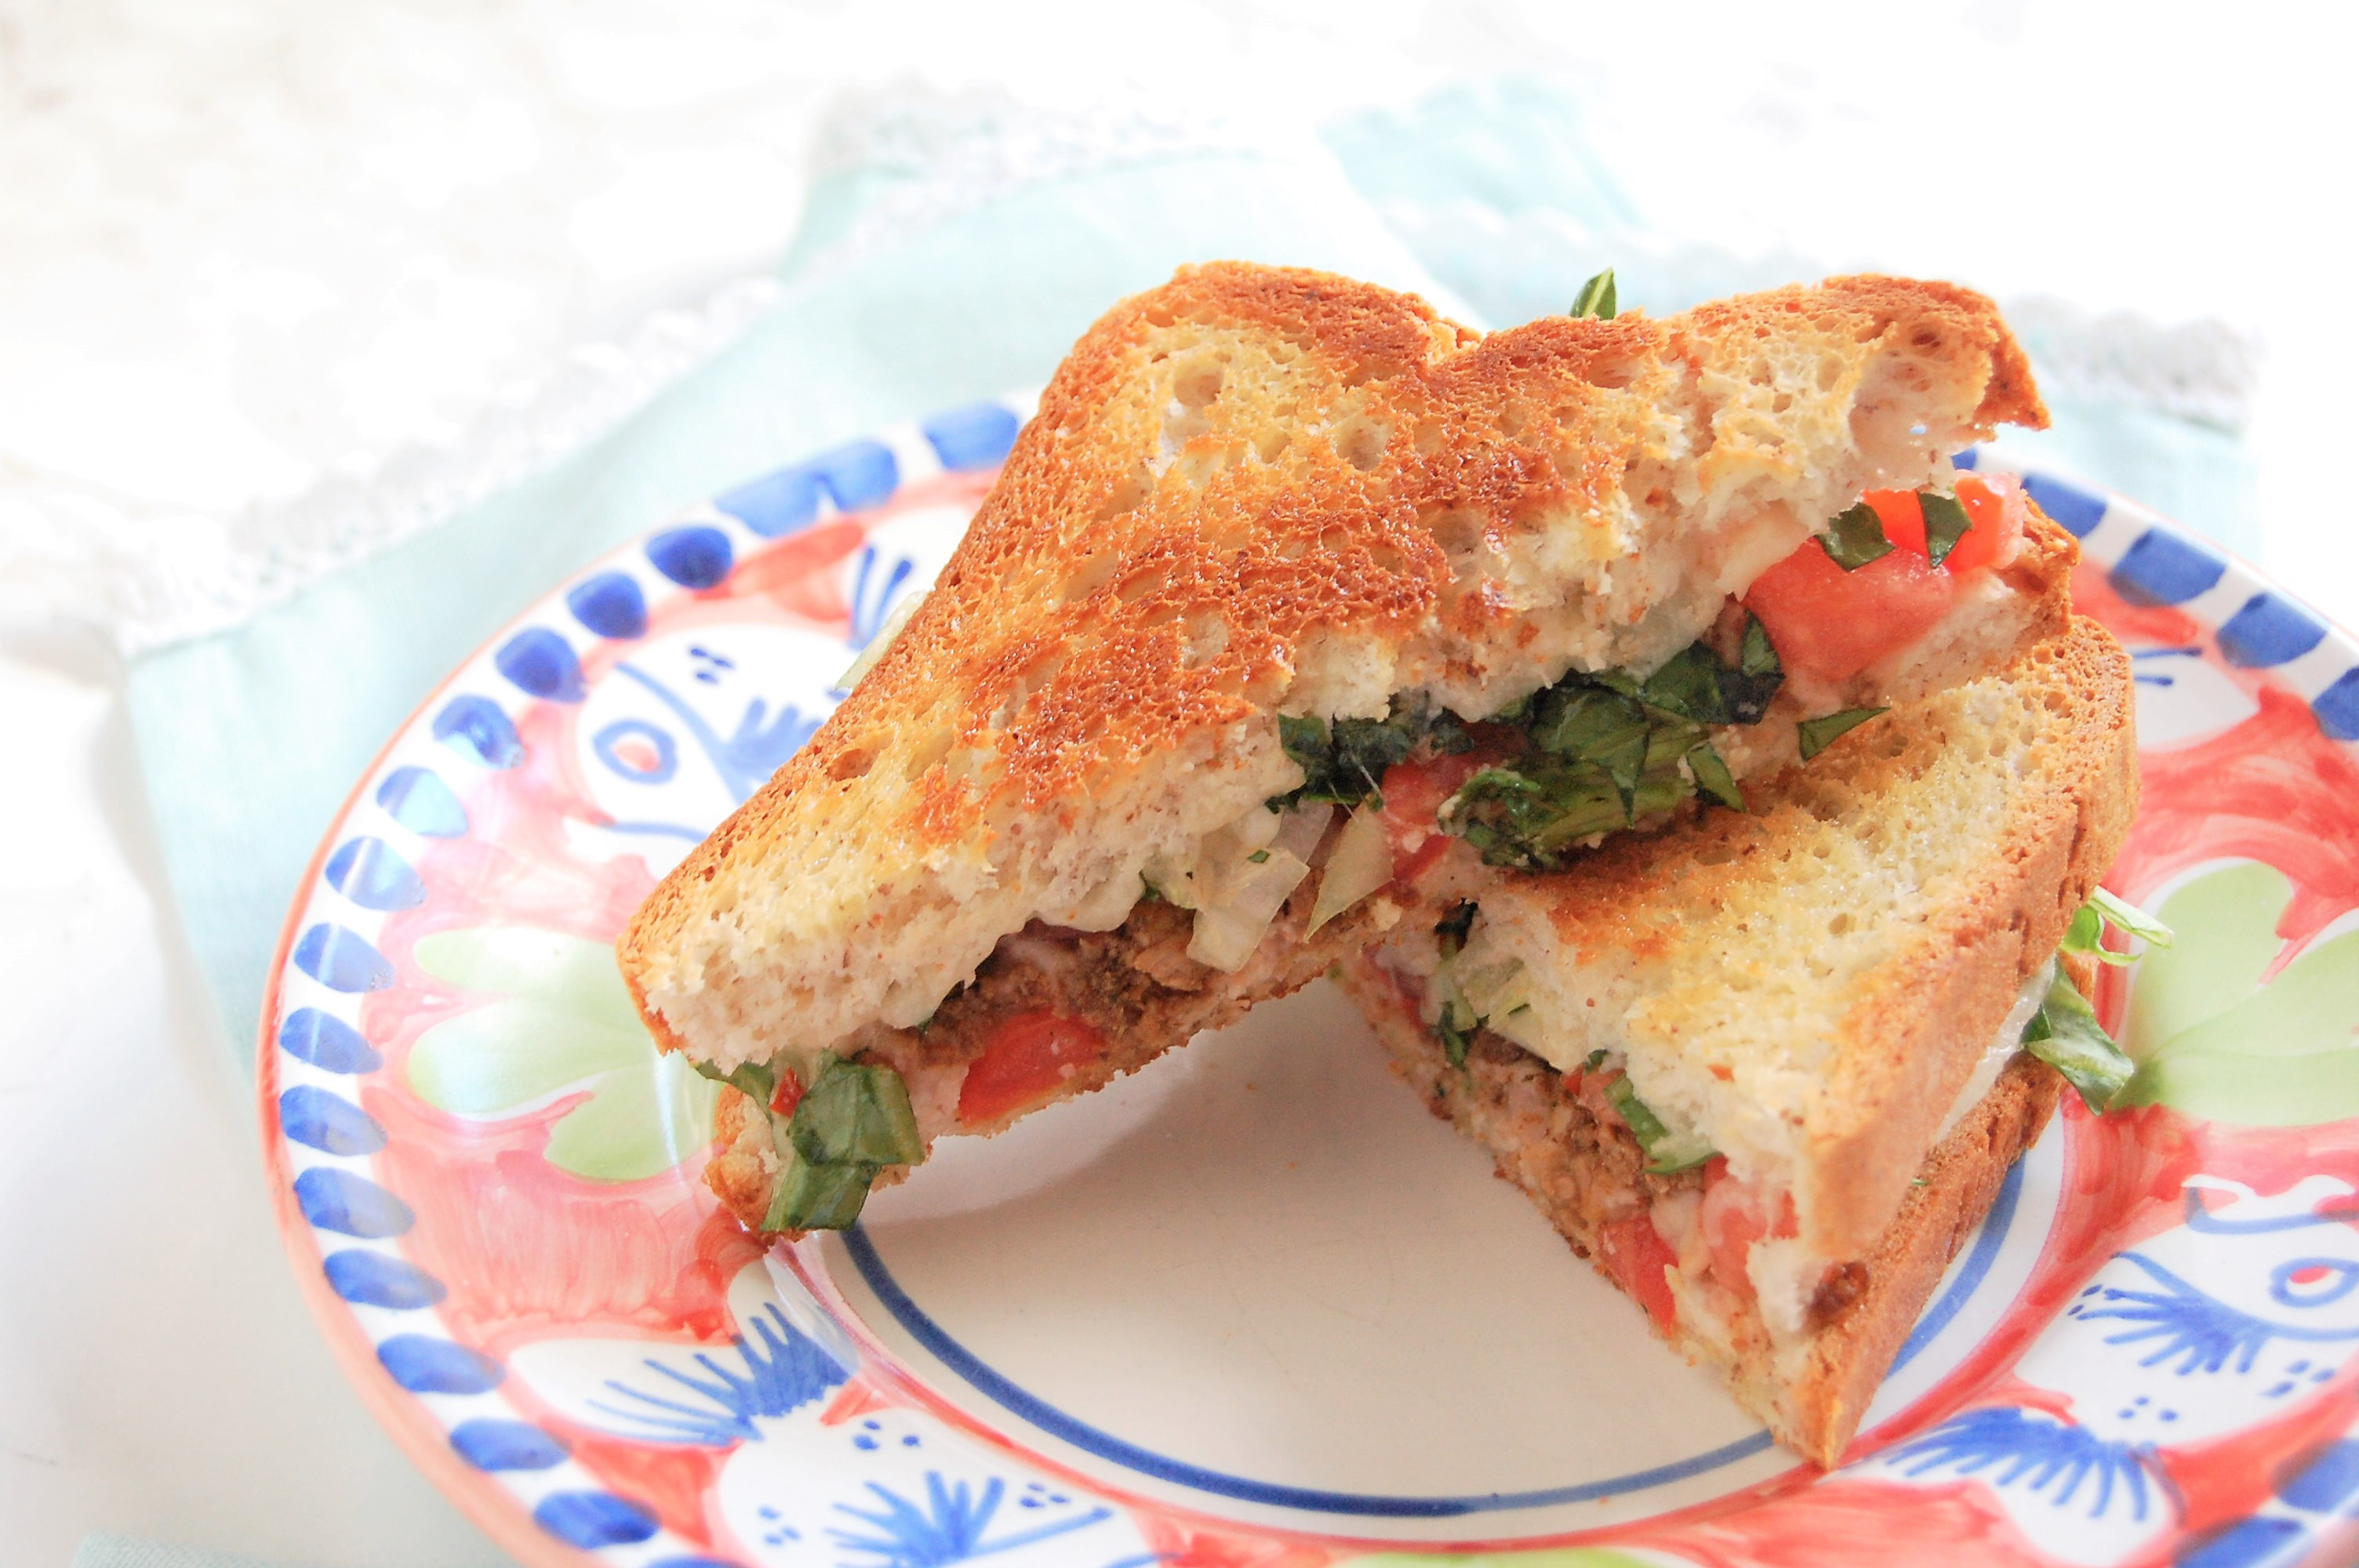 Grilled Cheese | Taco | Taco Sandwich | Taco Grilled Cheese | Fun Food | Family Friendly | Kid Food | Finger Food | Nutrition | Healthy | Nutrition to Fit